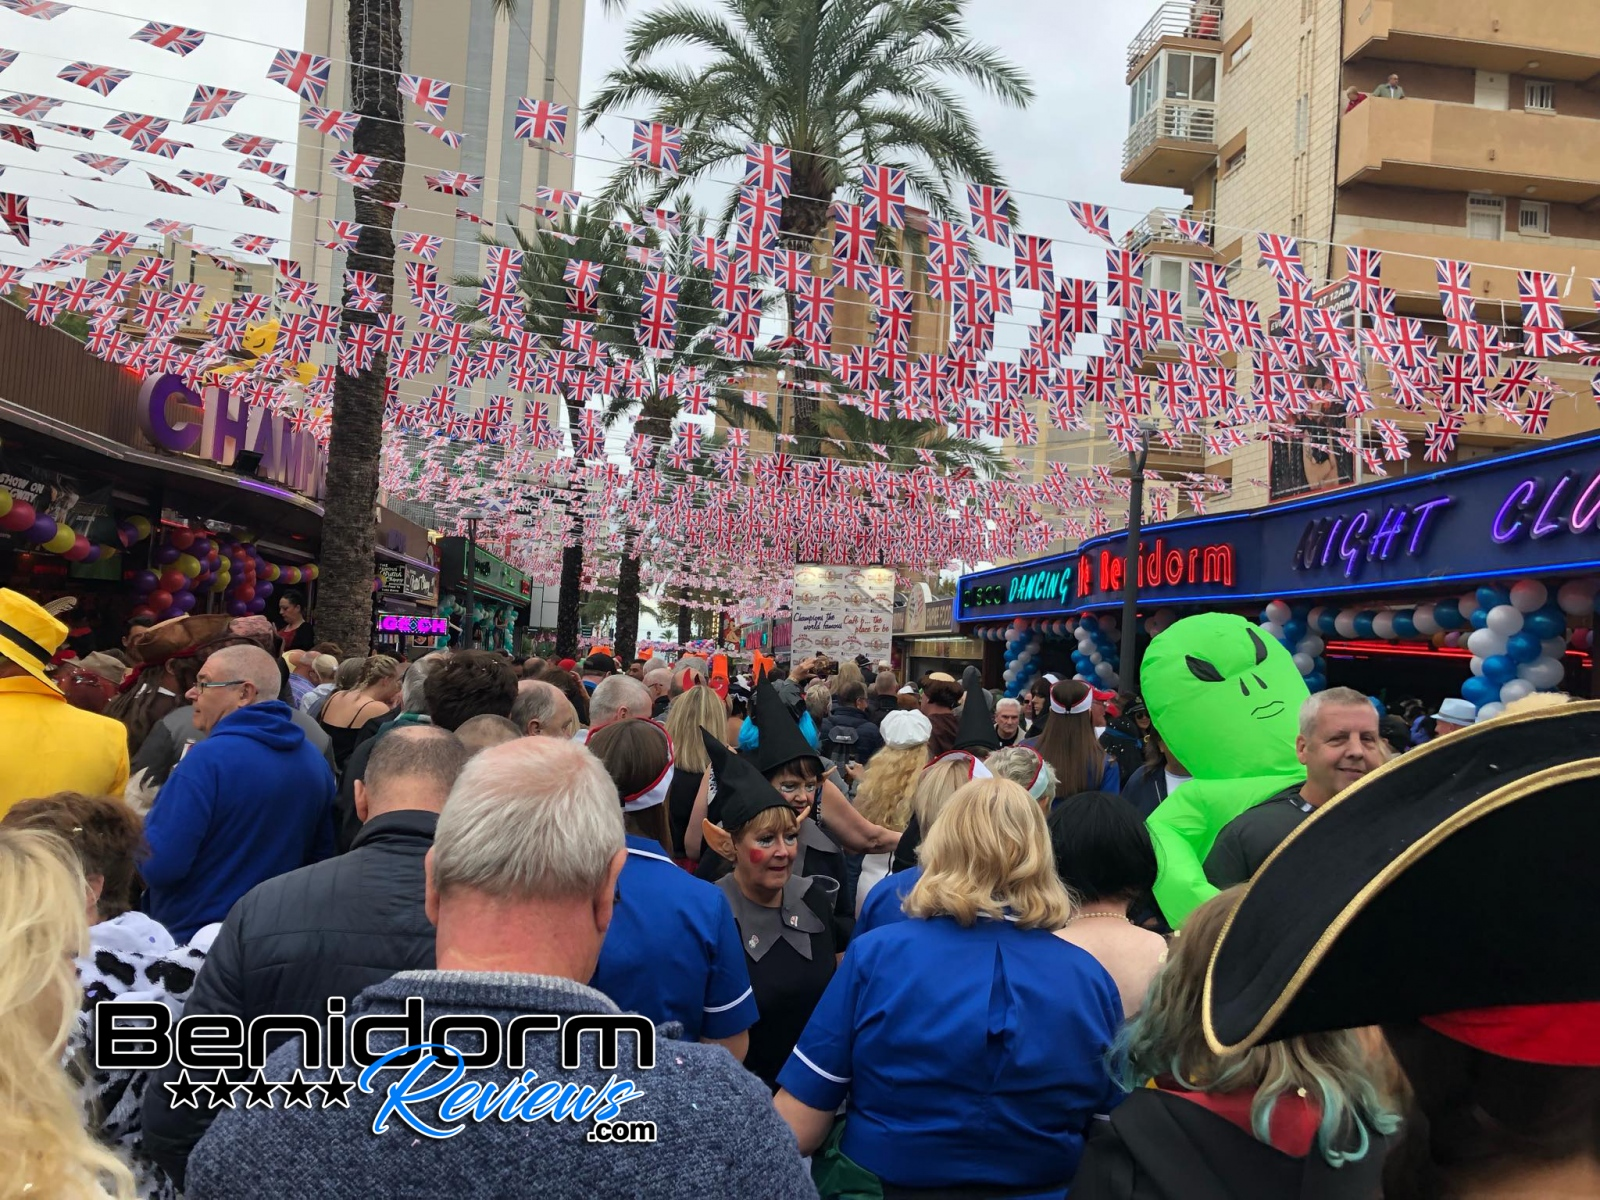 Benidorm-Fiestas-2019-Fancy-Dress-190